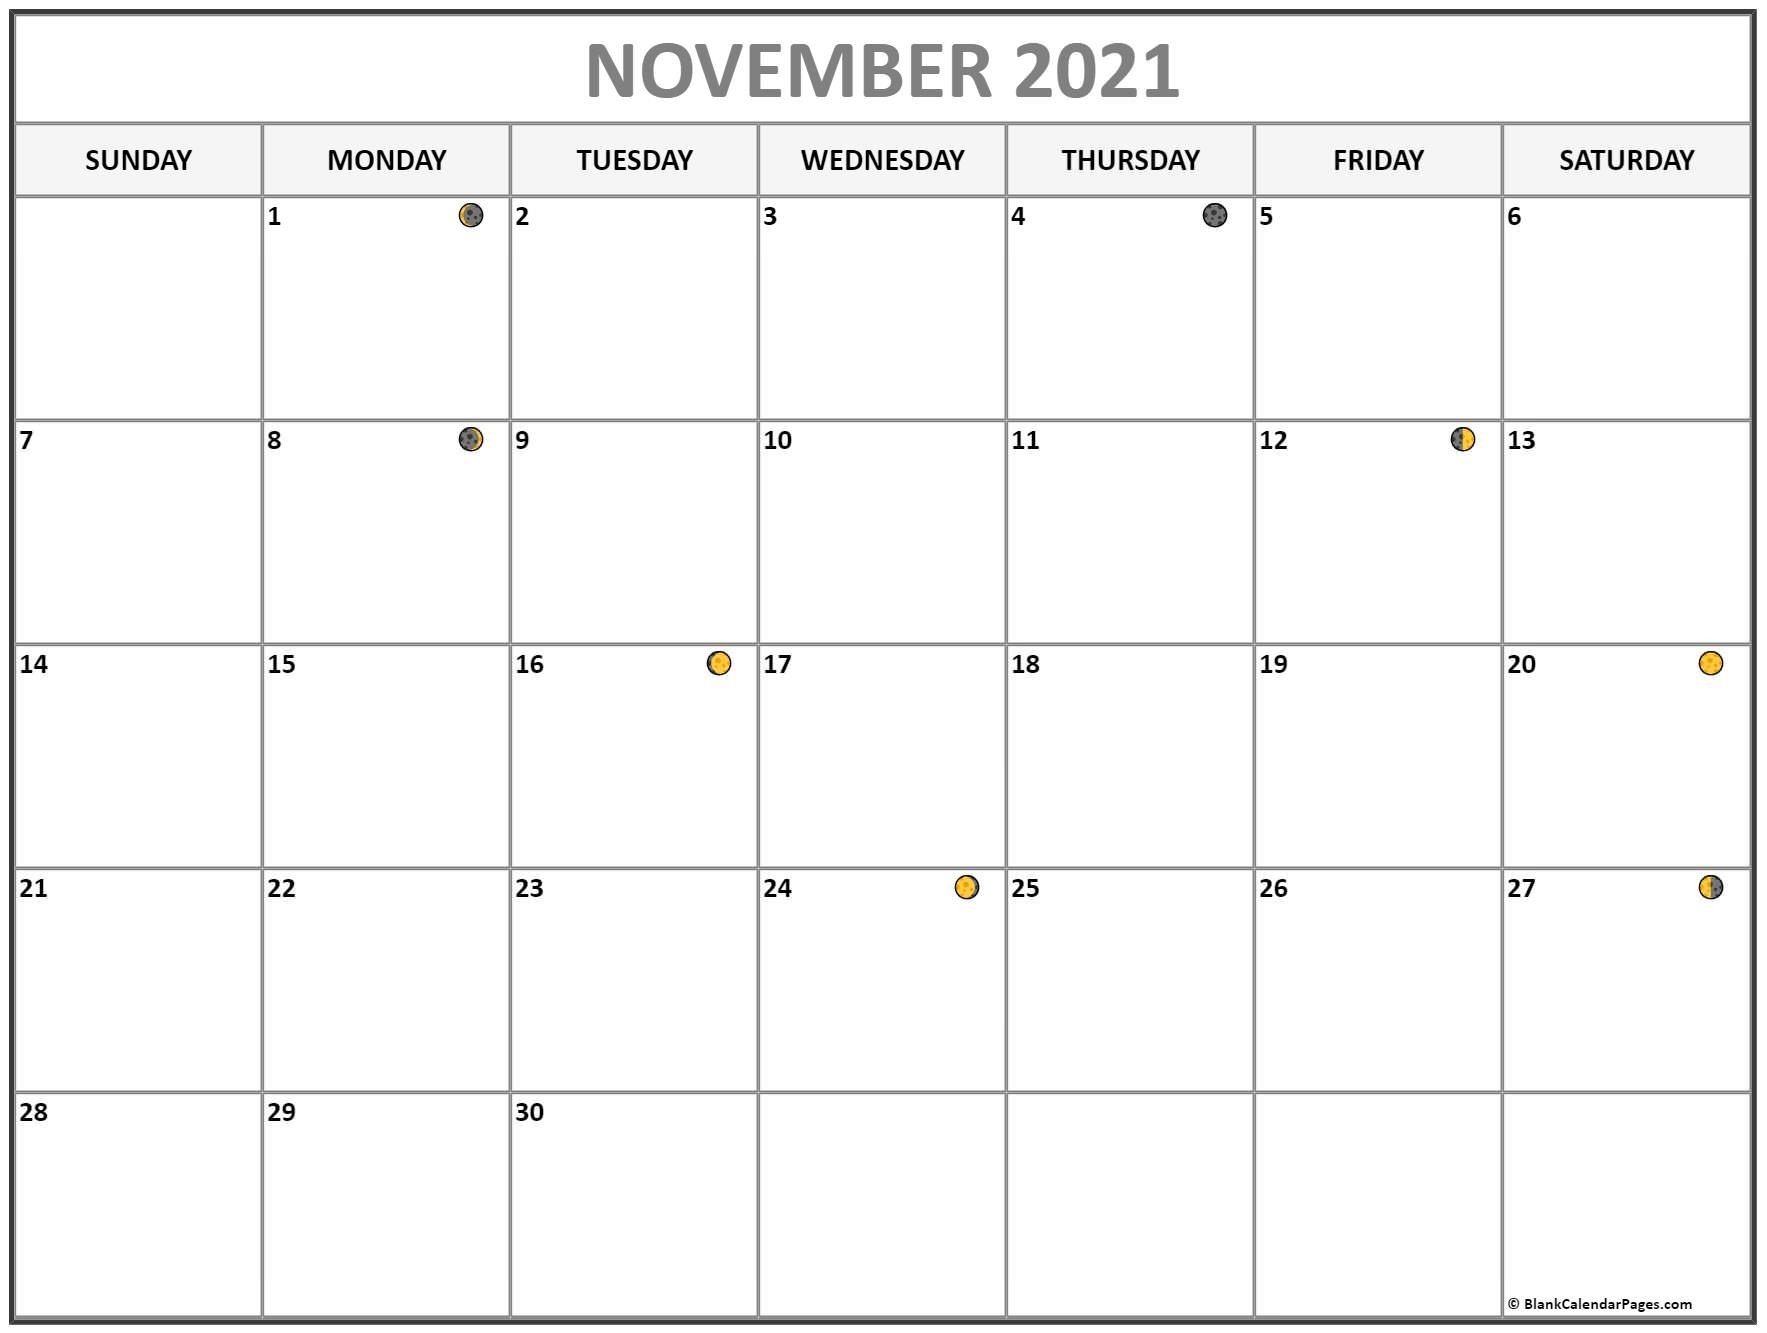 Pick November 2021 With Moons